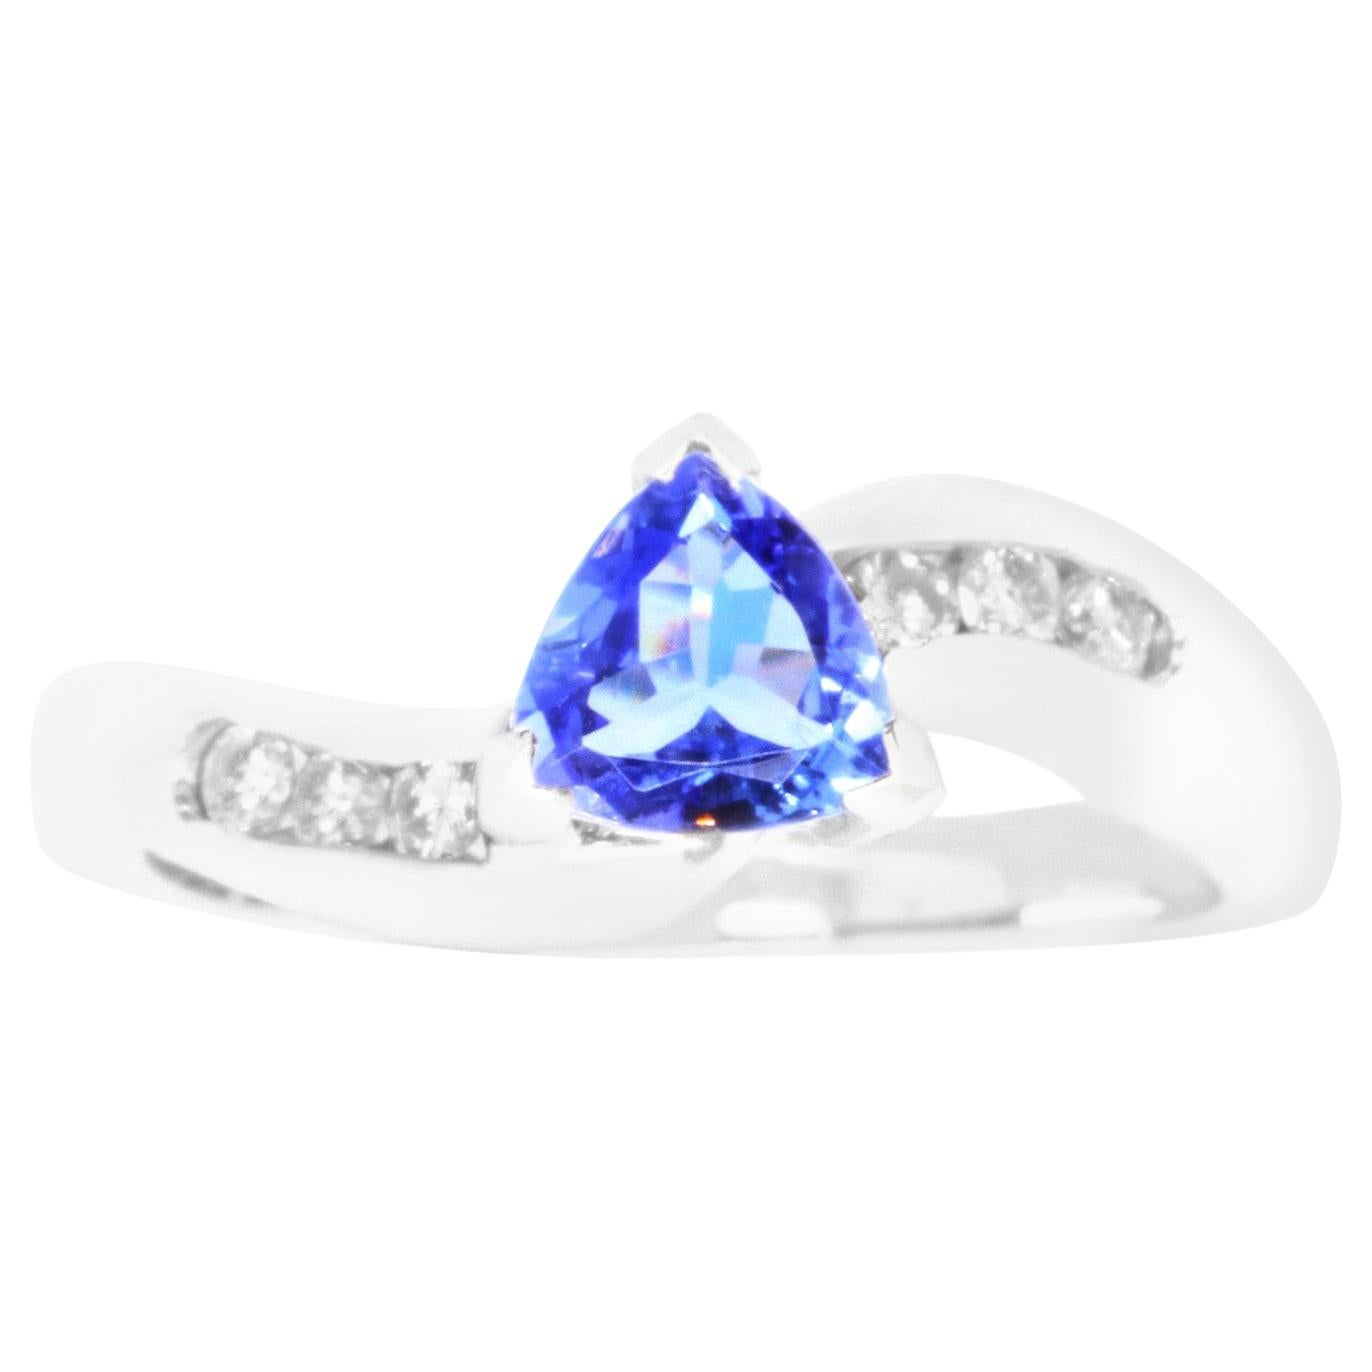 e191b94cfee74c Antique Tanzanite Cocktail Rings - 468 For Sale at 1stdibs